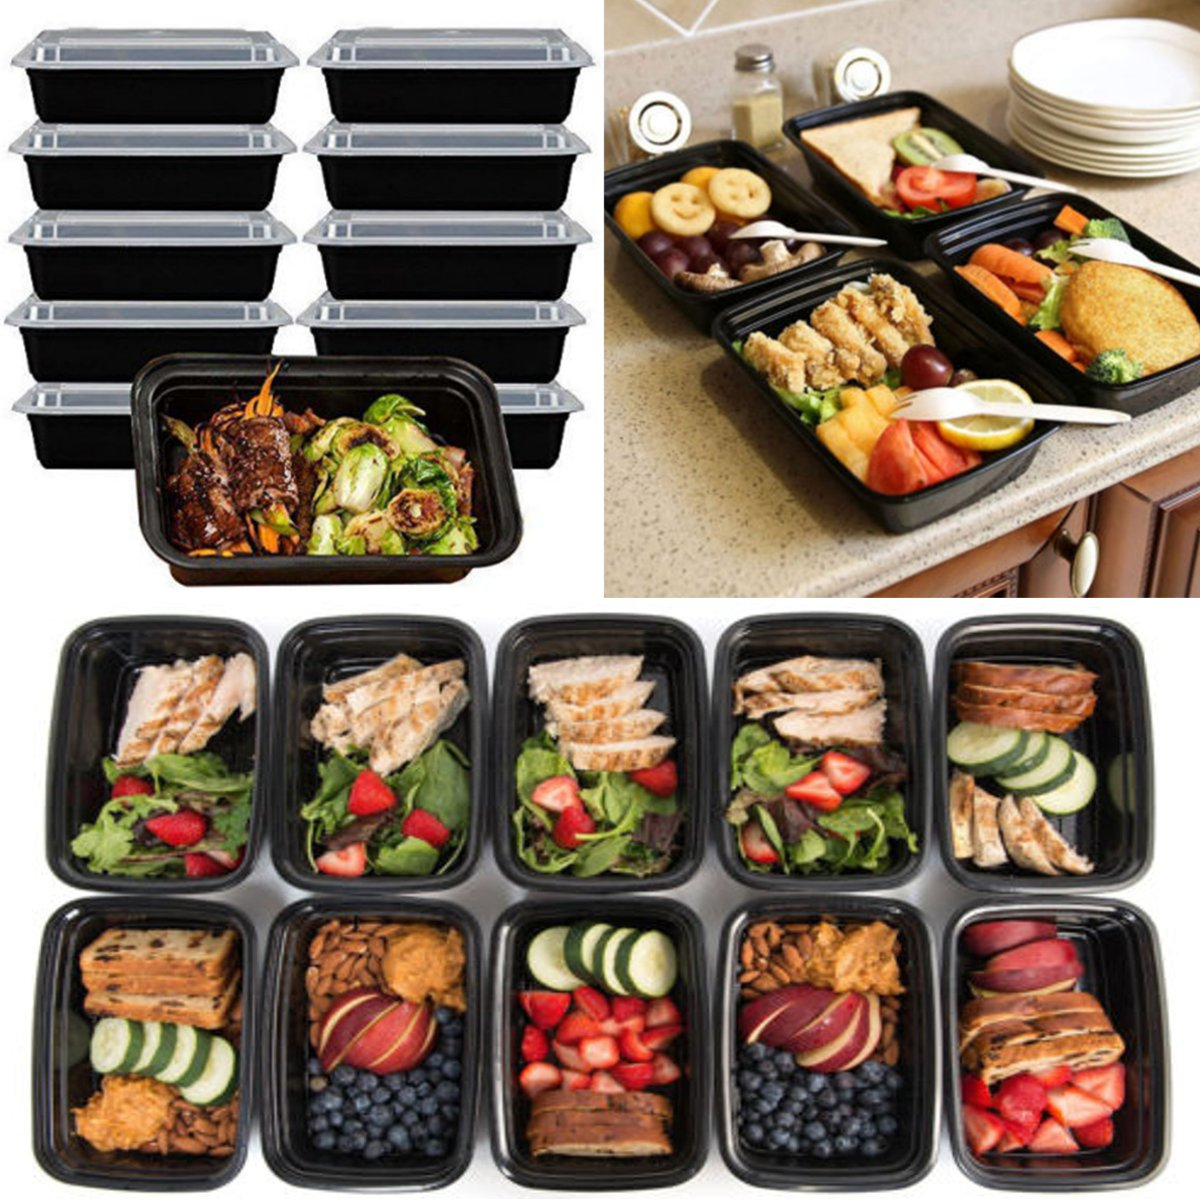 10 Pcs Microwavable Food Meal Storage Containers Reusable Lunch Boxes Bento Box Eco-friendly Picnic Food Storage Container 450ml